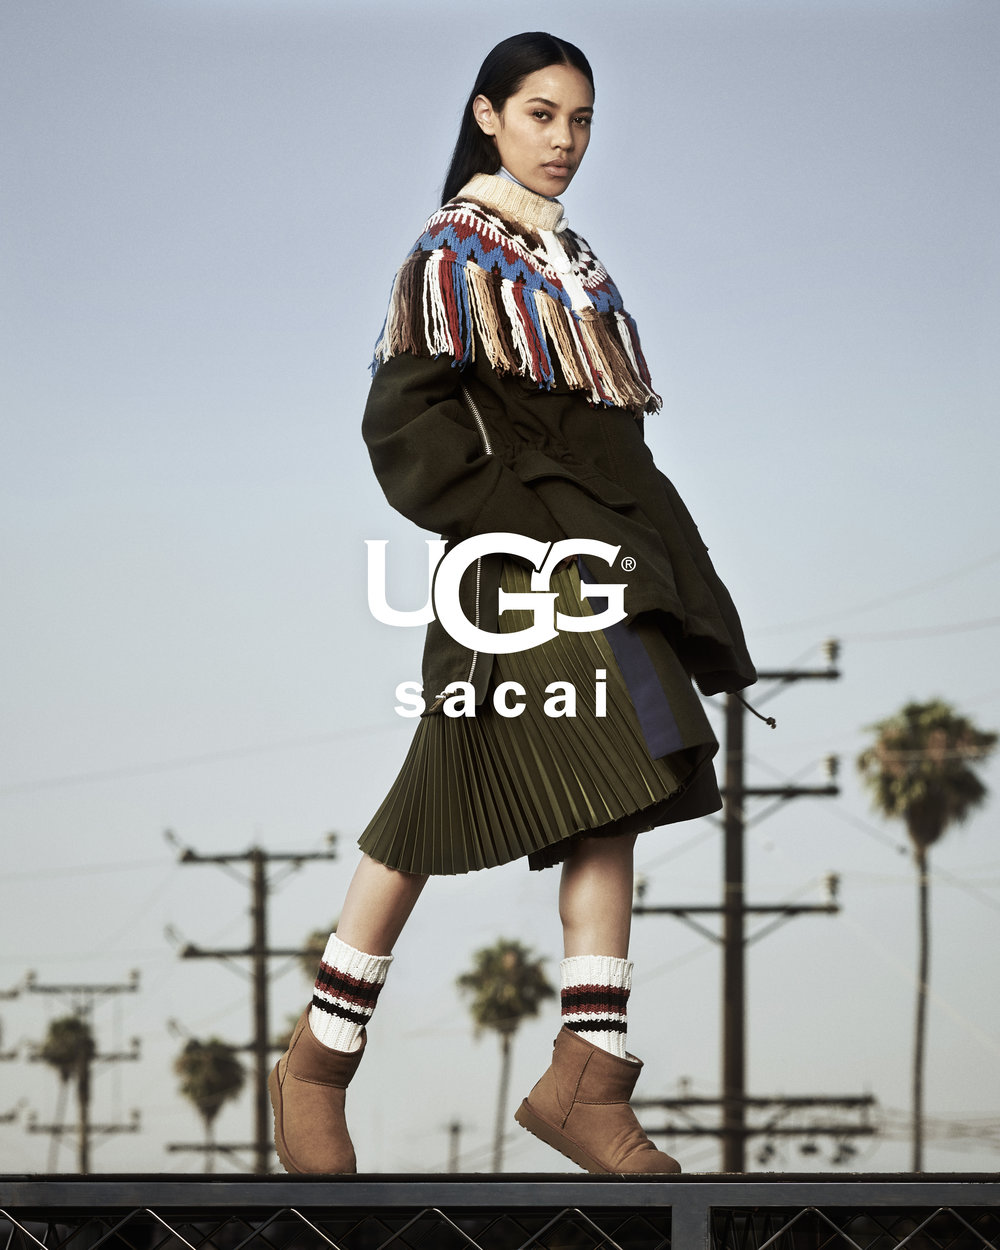 STYLING by Stacy Zimmerman for UGG x Sacai